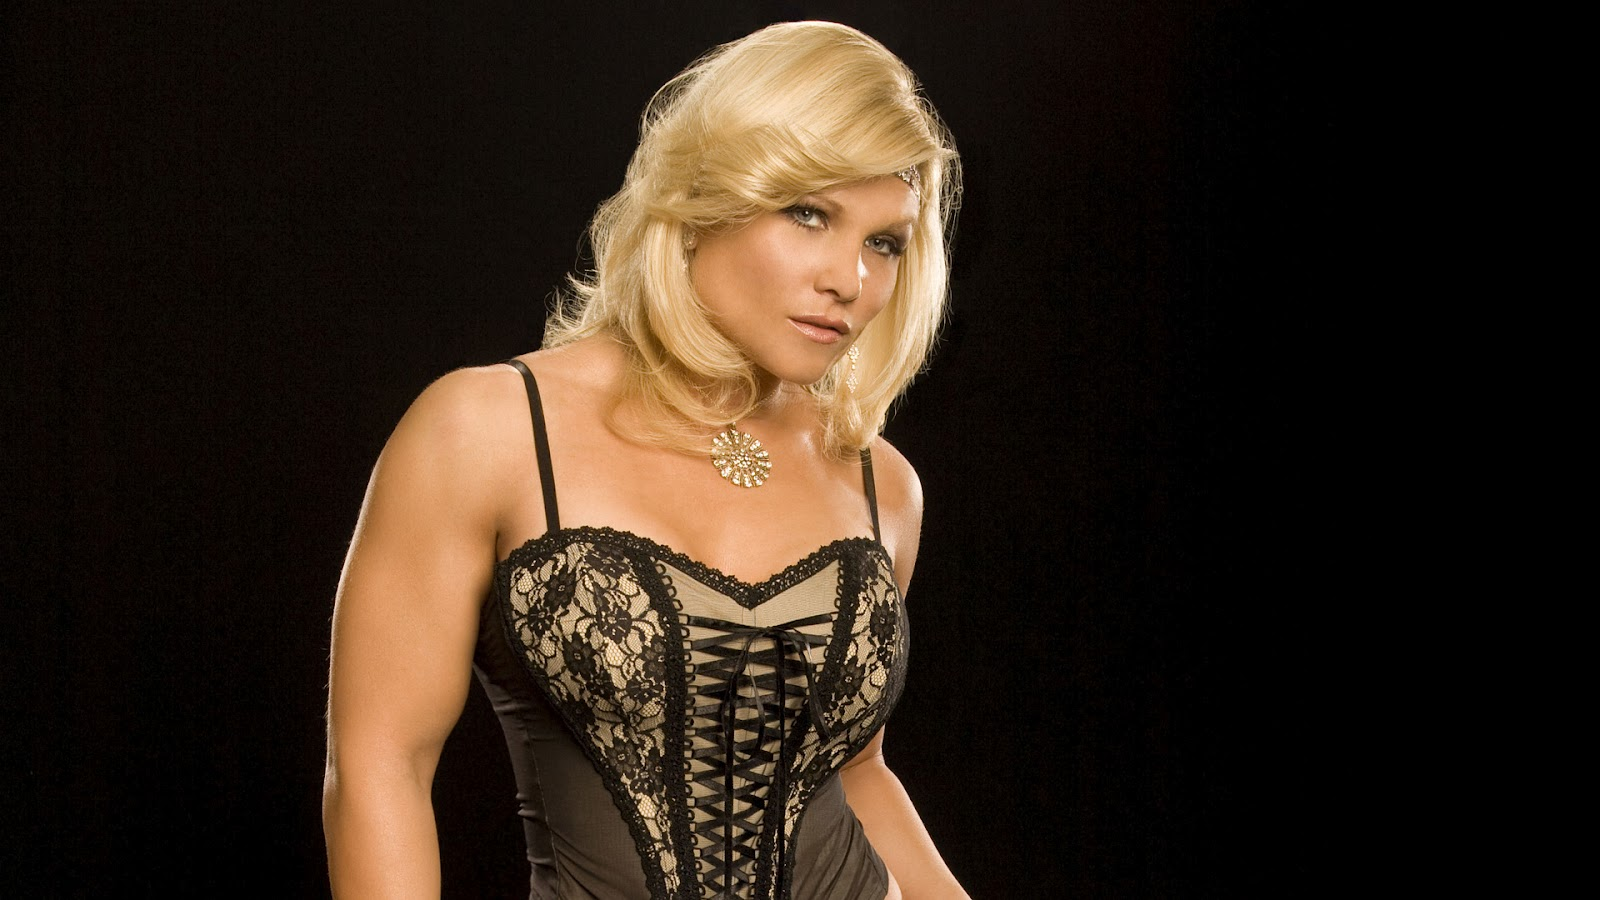 beth phoenix wwe - photo #3